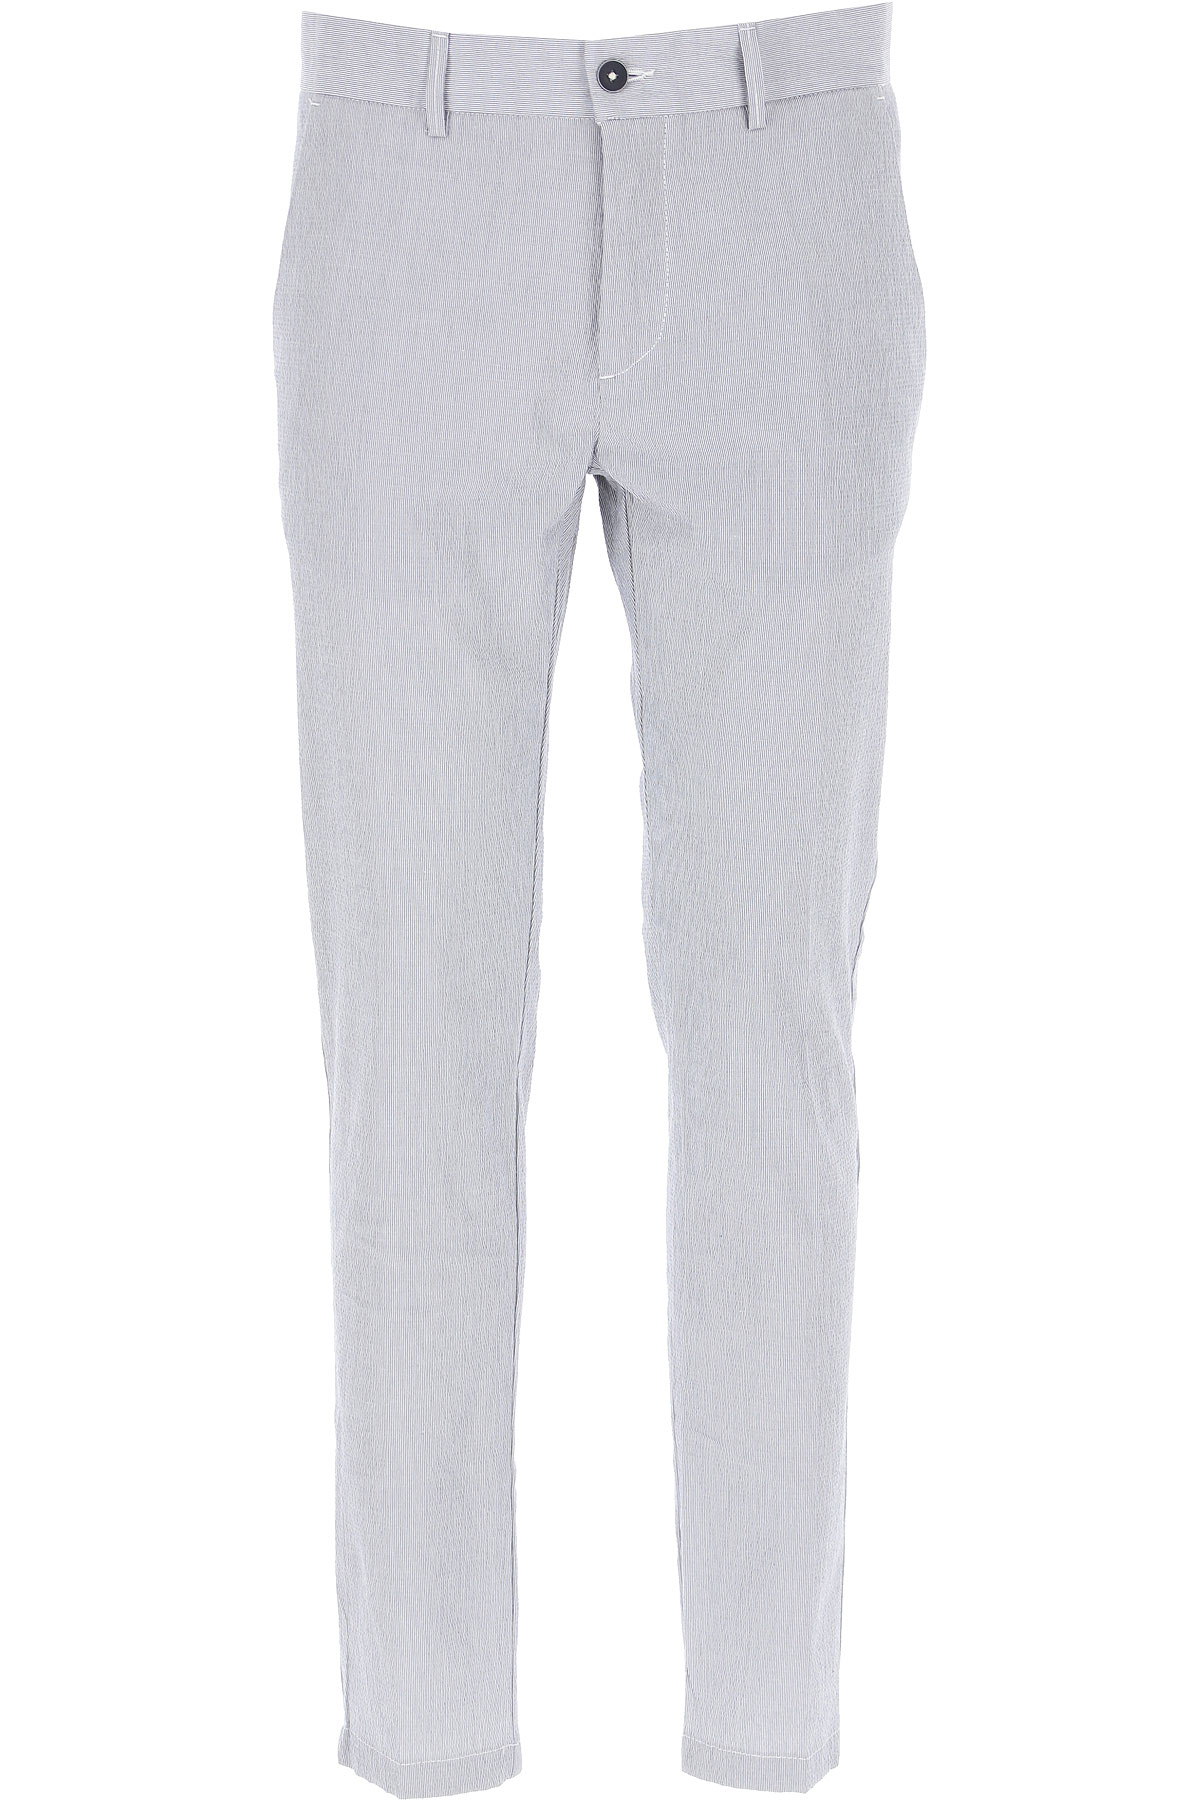 Brooksfield Pants for Men On Sale, White, Cotton, 2019, 32 34 36 38